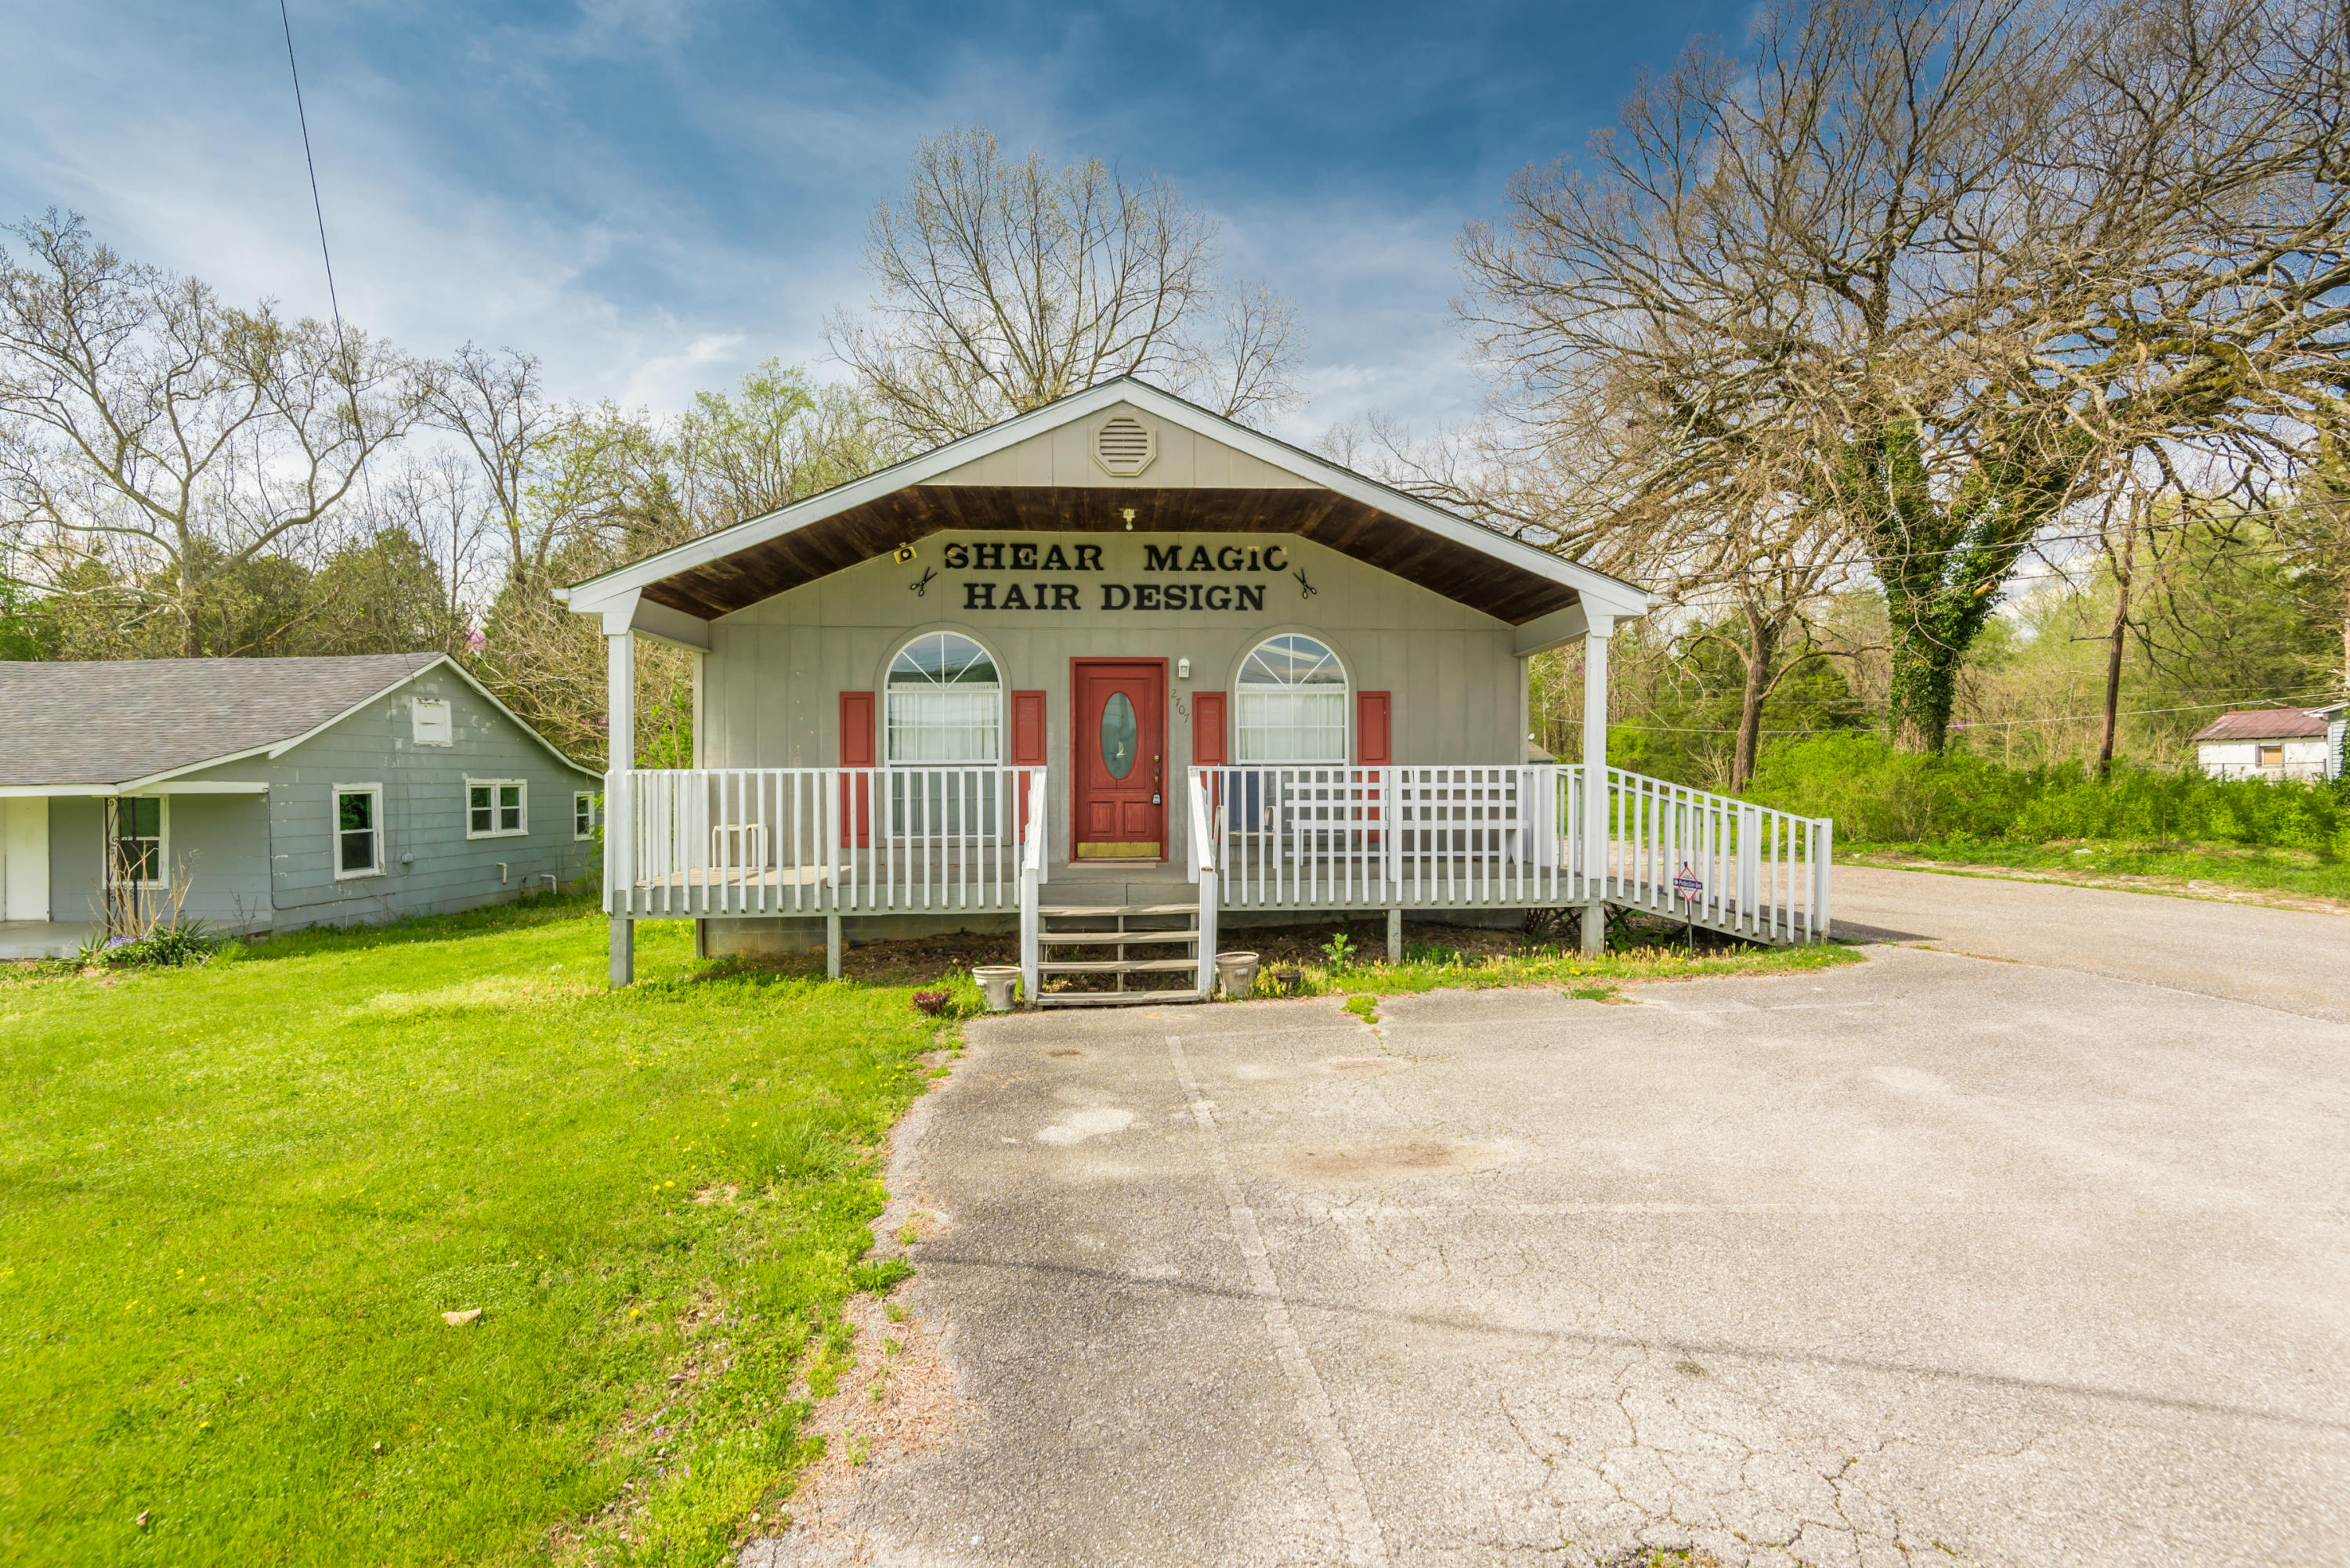 20190417183056507833000000-o Clinton anderson county homes for sale